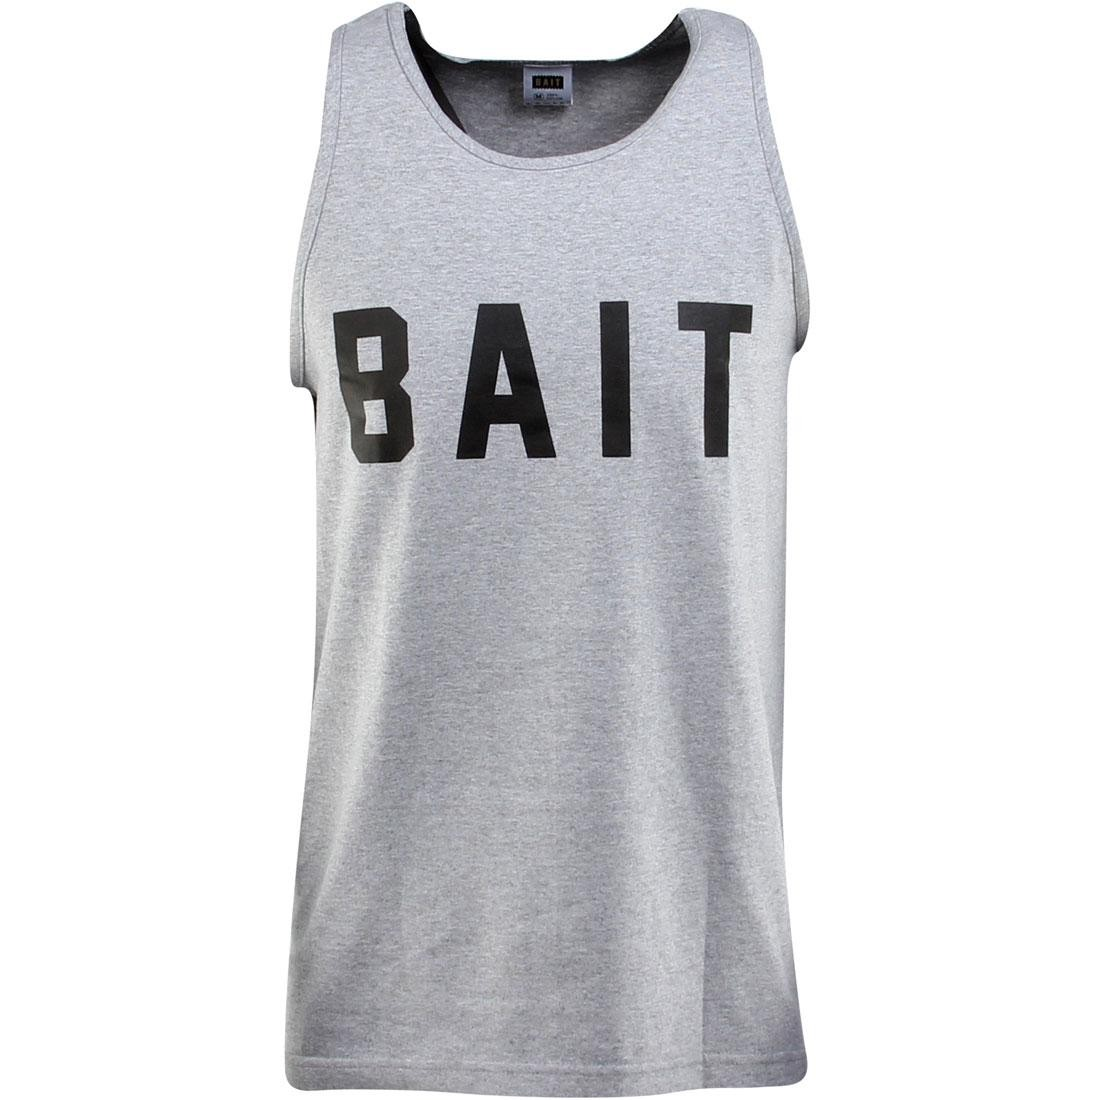 BAIT Logo Tank Top (gray / heather gray / black)